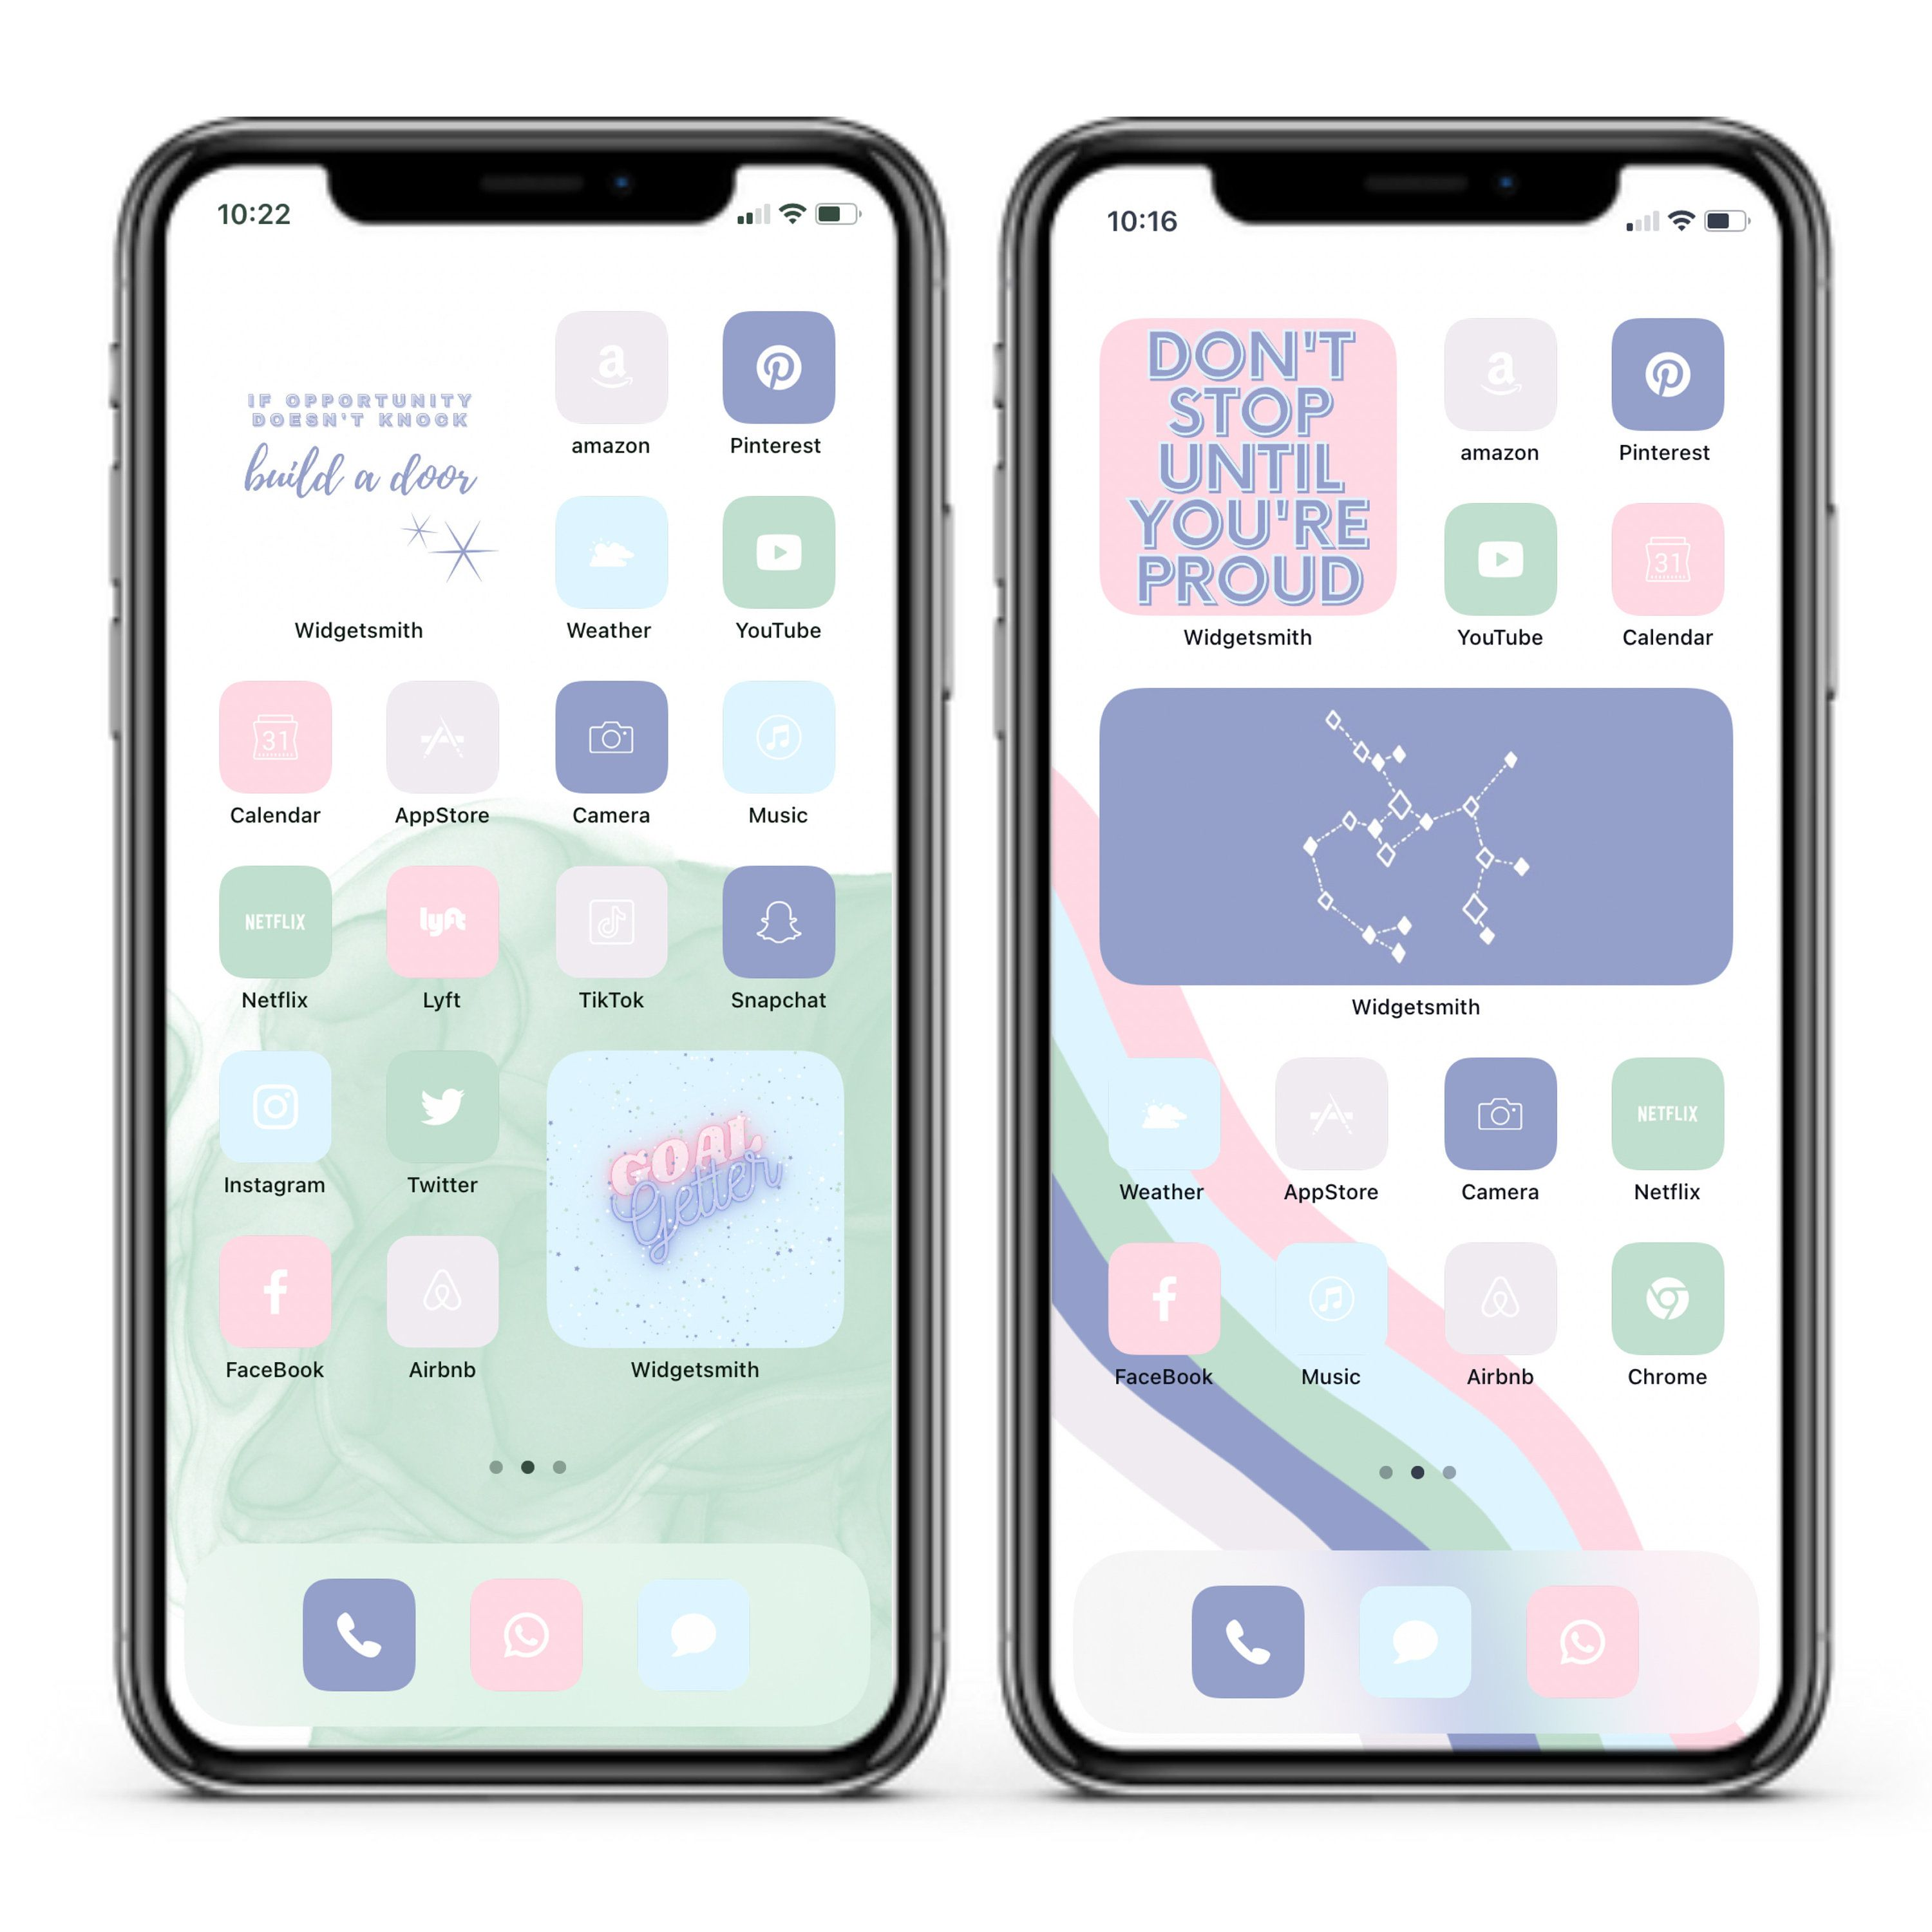 Ios14 L Pastel Icons Widgets And Backgrounds Etsy In 2021 Iphone App Layout App Background Iphone Home Screen Layout